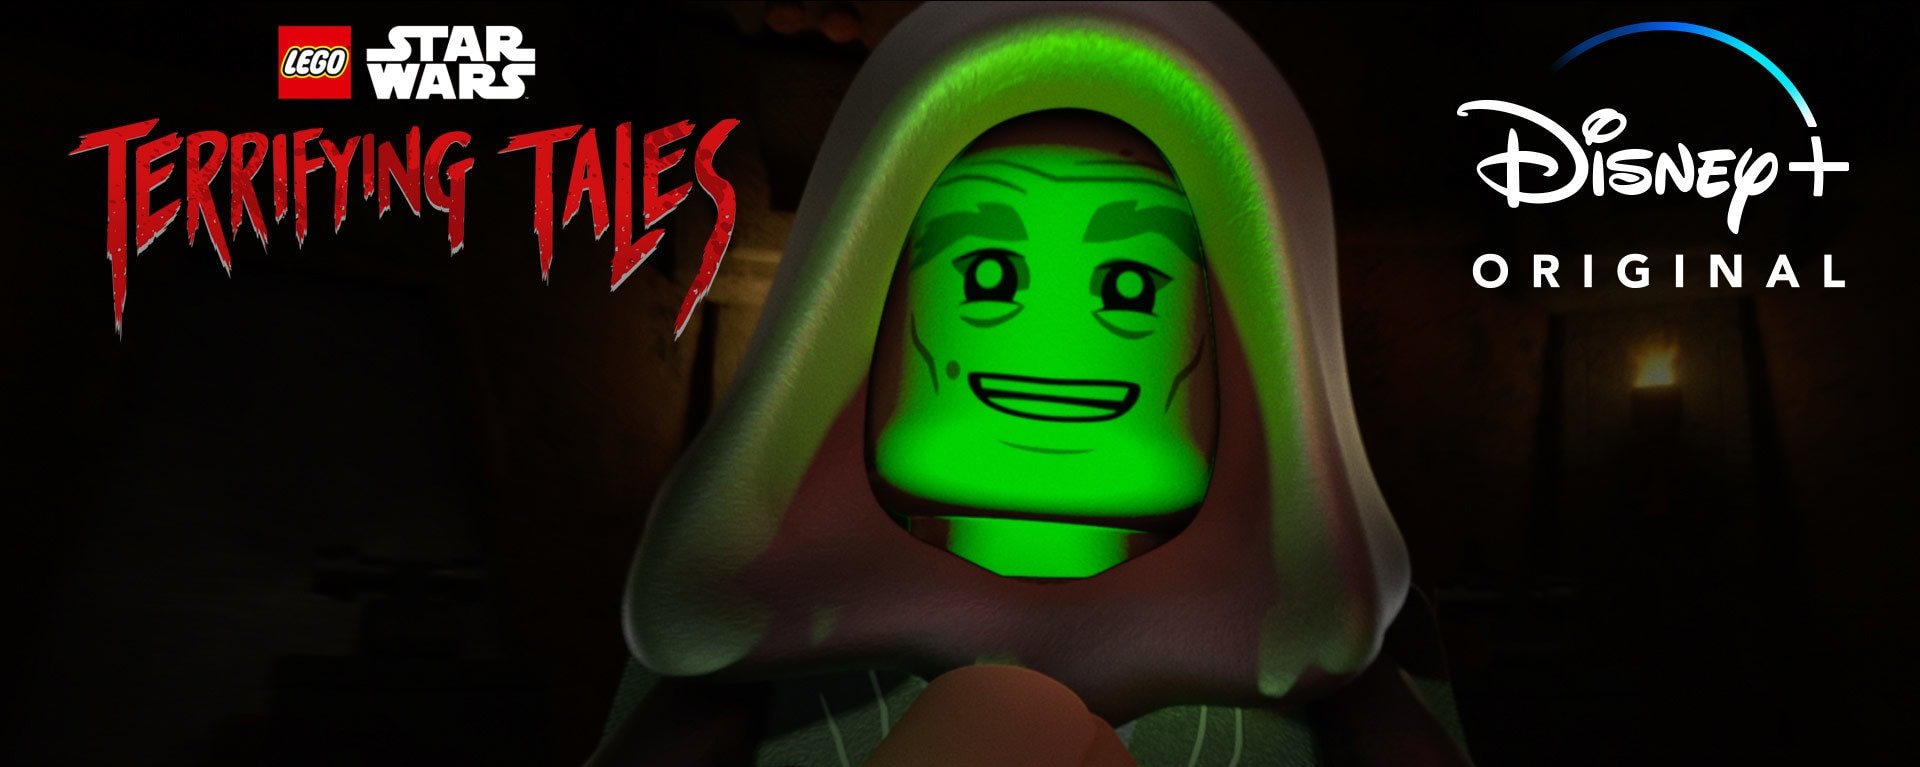 Official Trailer - LEGO Star Wars Terrifying Tales